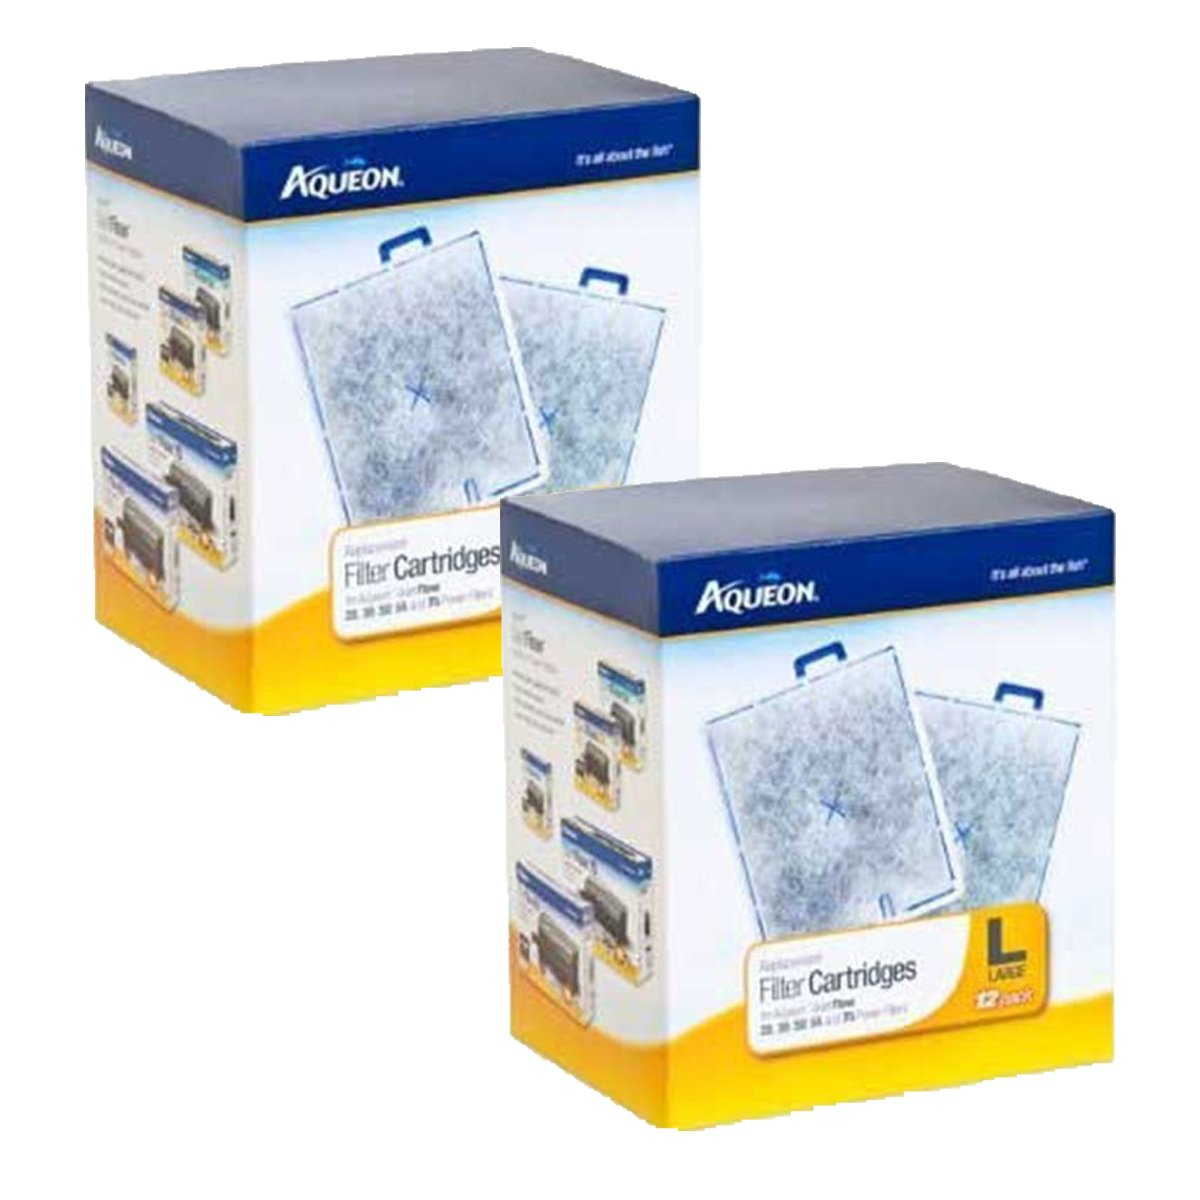 Aqueon Replacement Filter Cartridge Large 24 Count by Aqueon